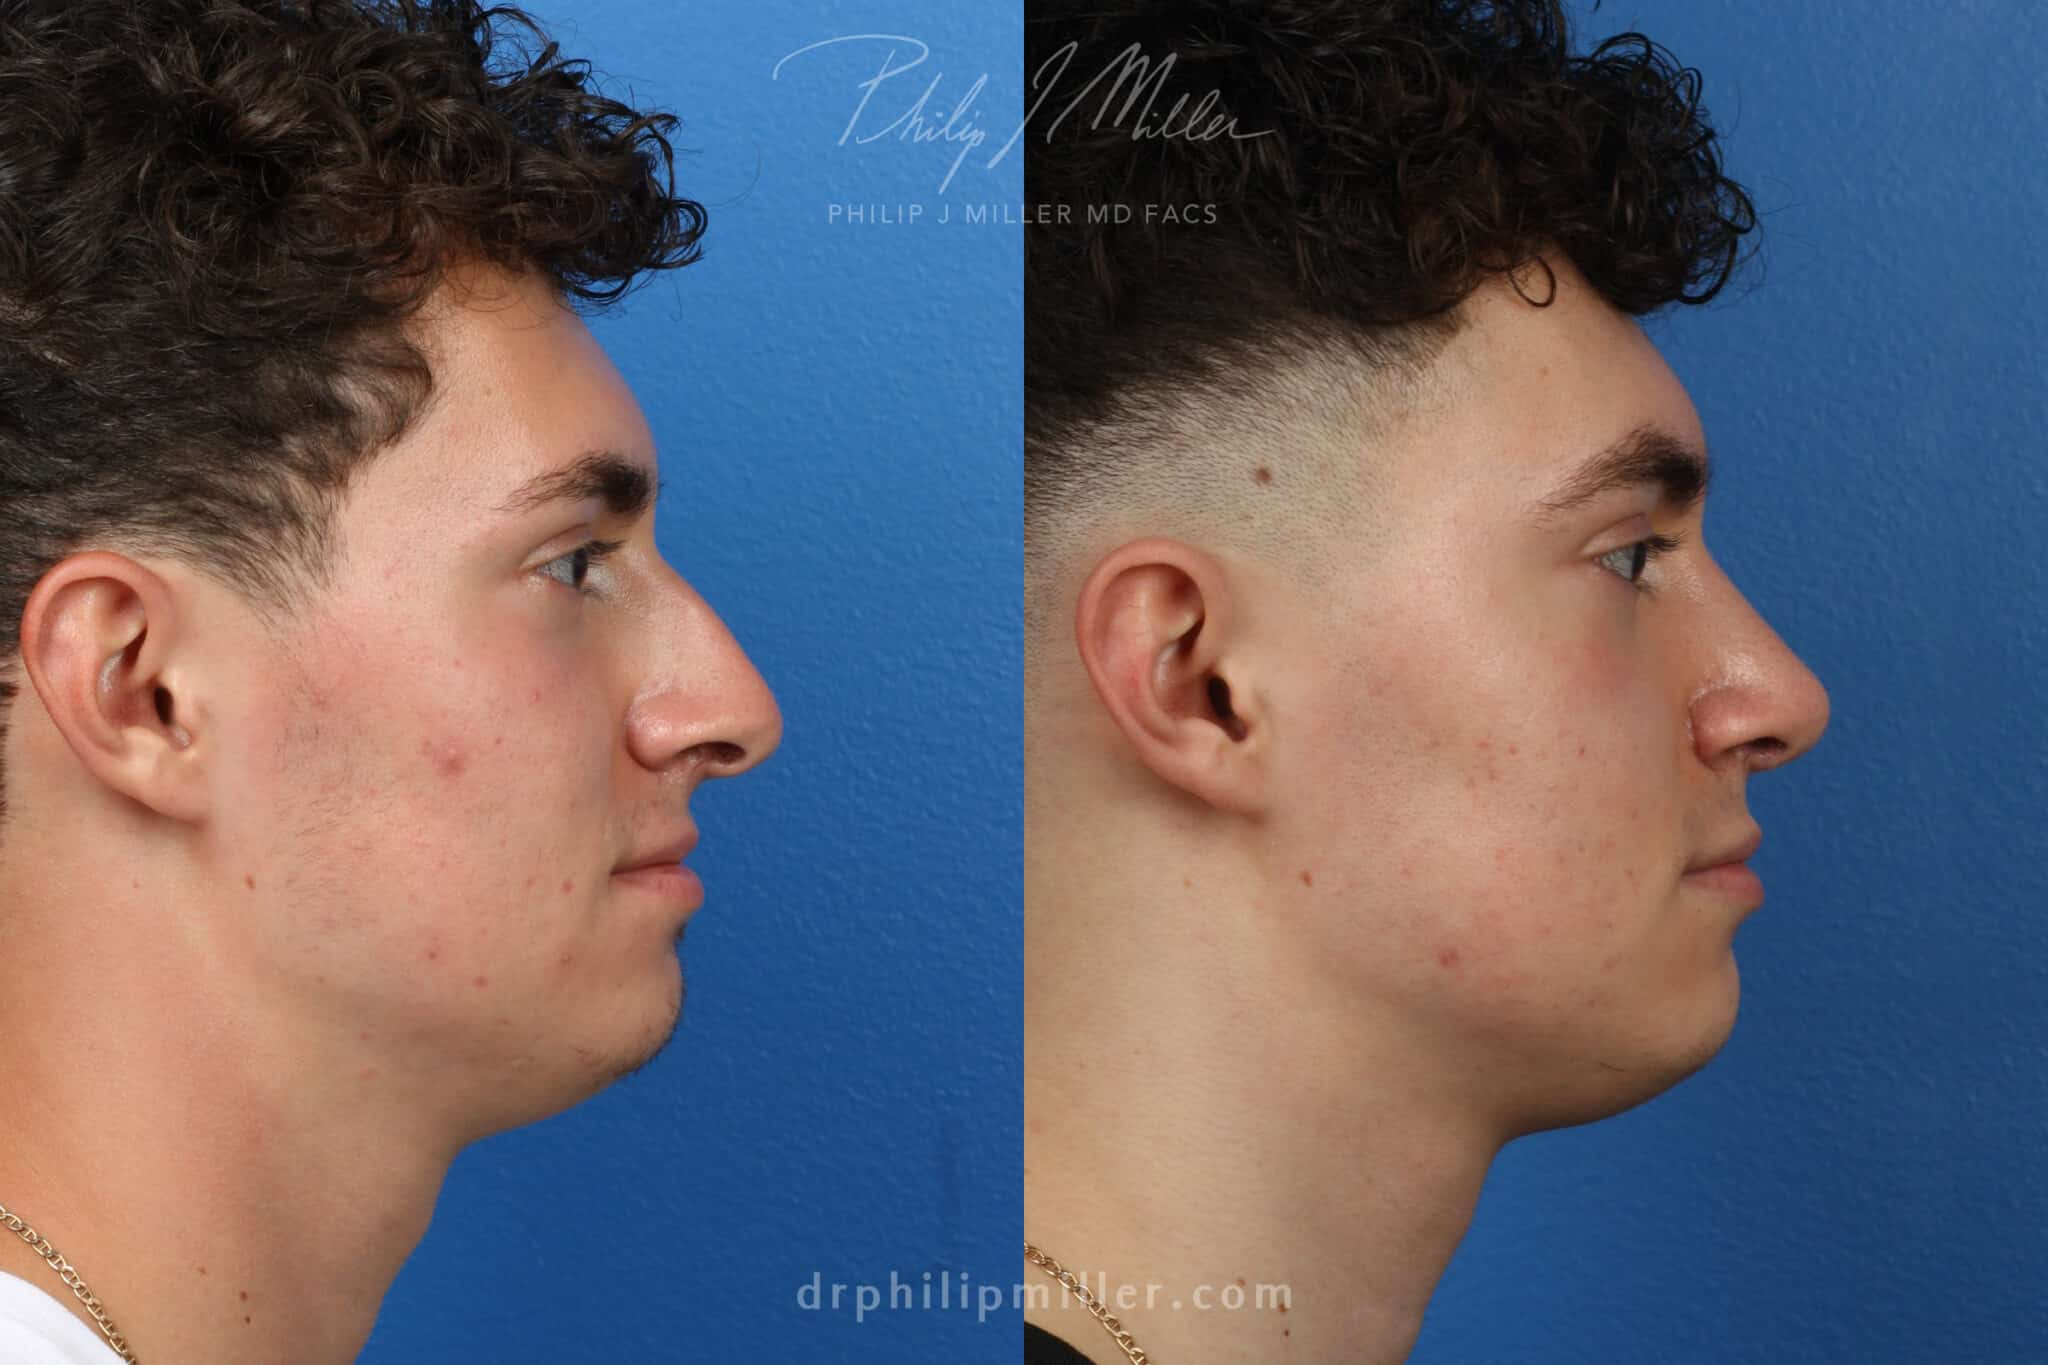 Rhinoplasty to correct bridge and nasal tip, 3 months post-op, by Dr. Miller